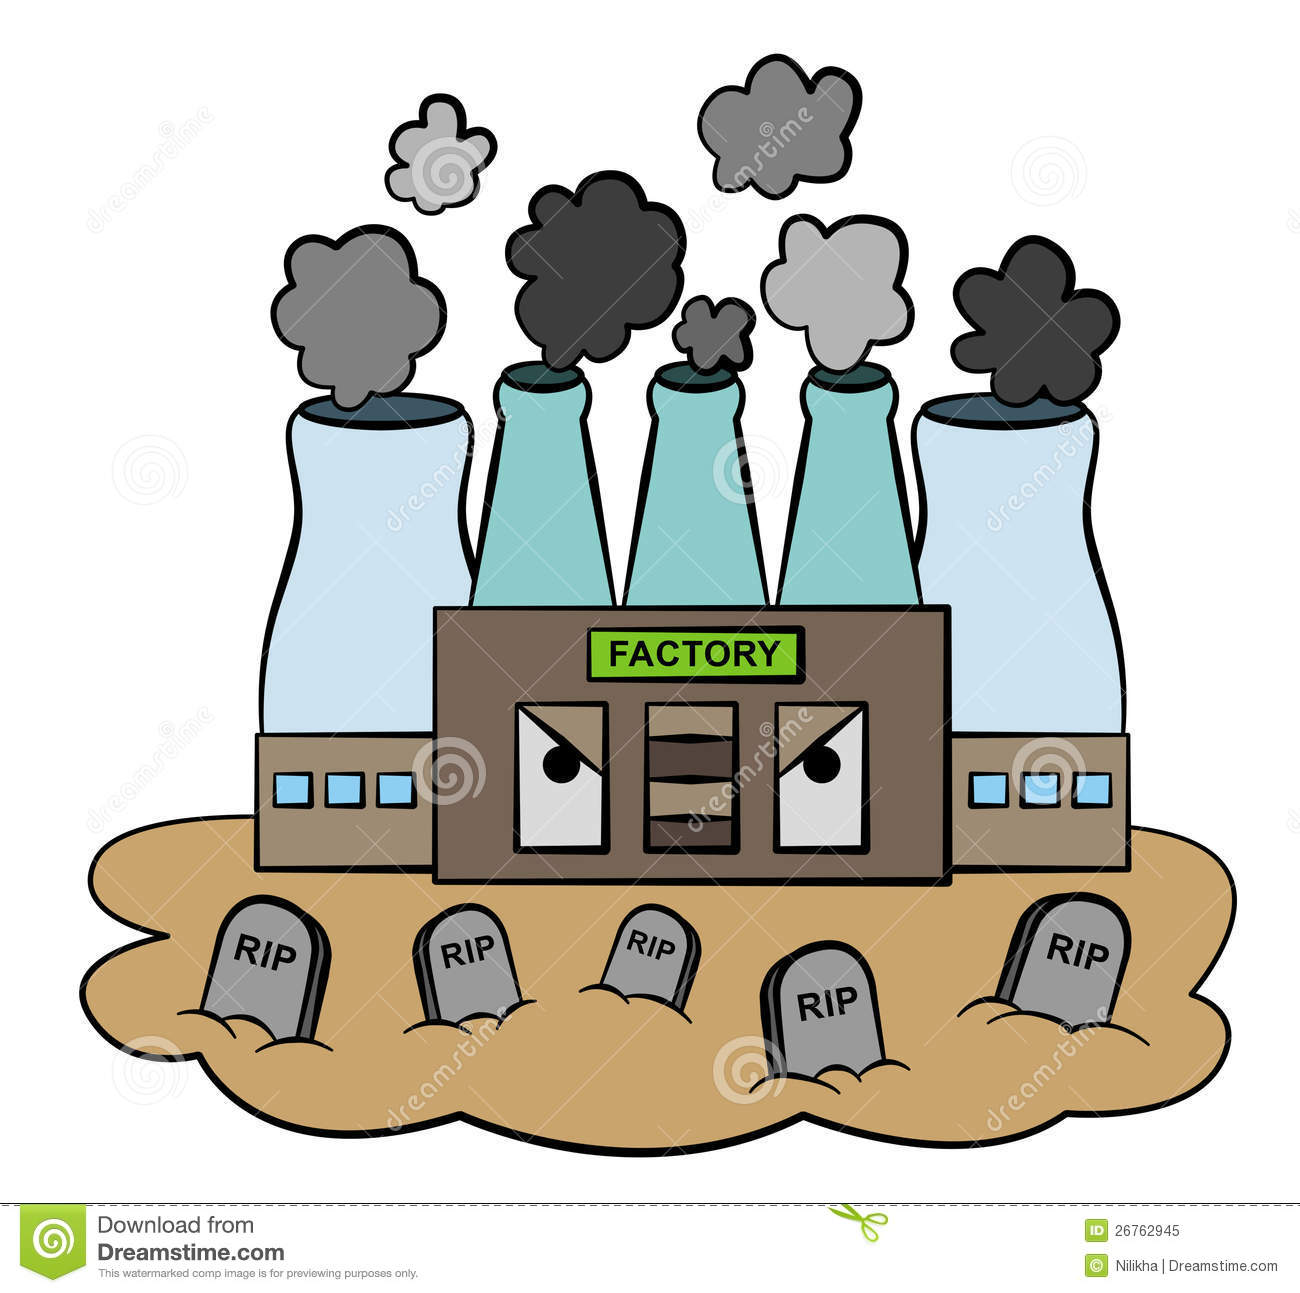 Factories Clip Art - Factories Clipart